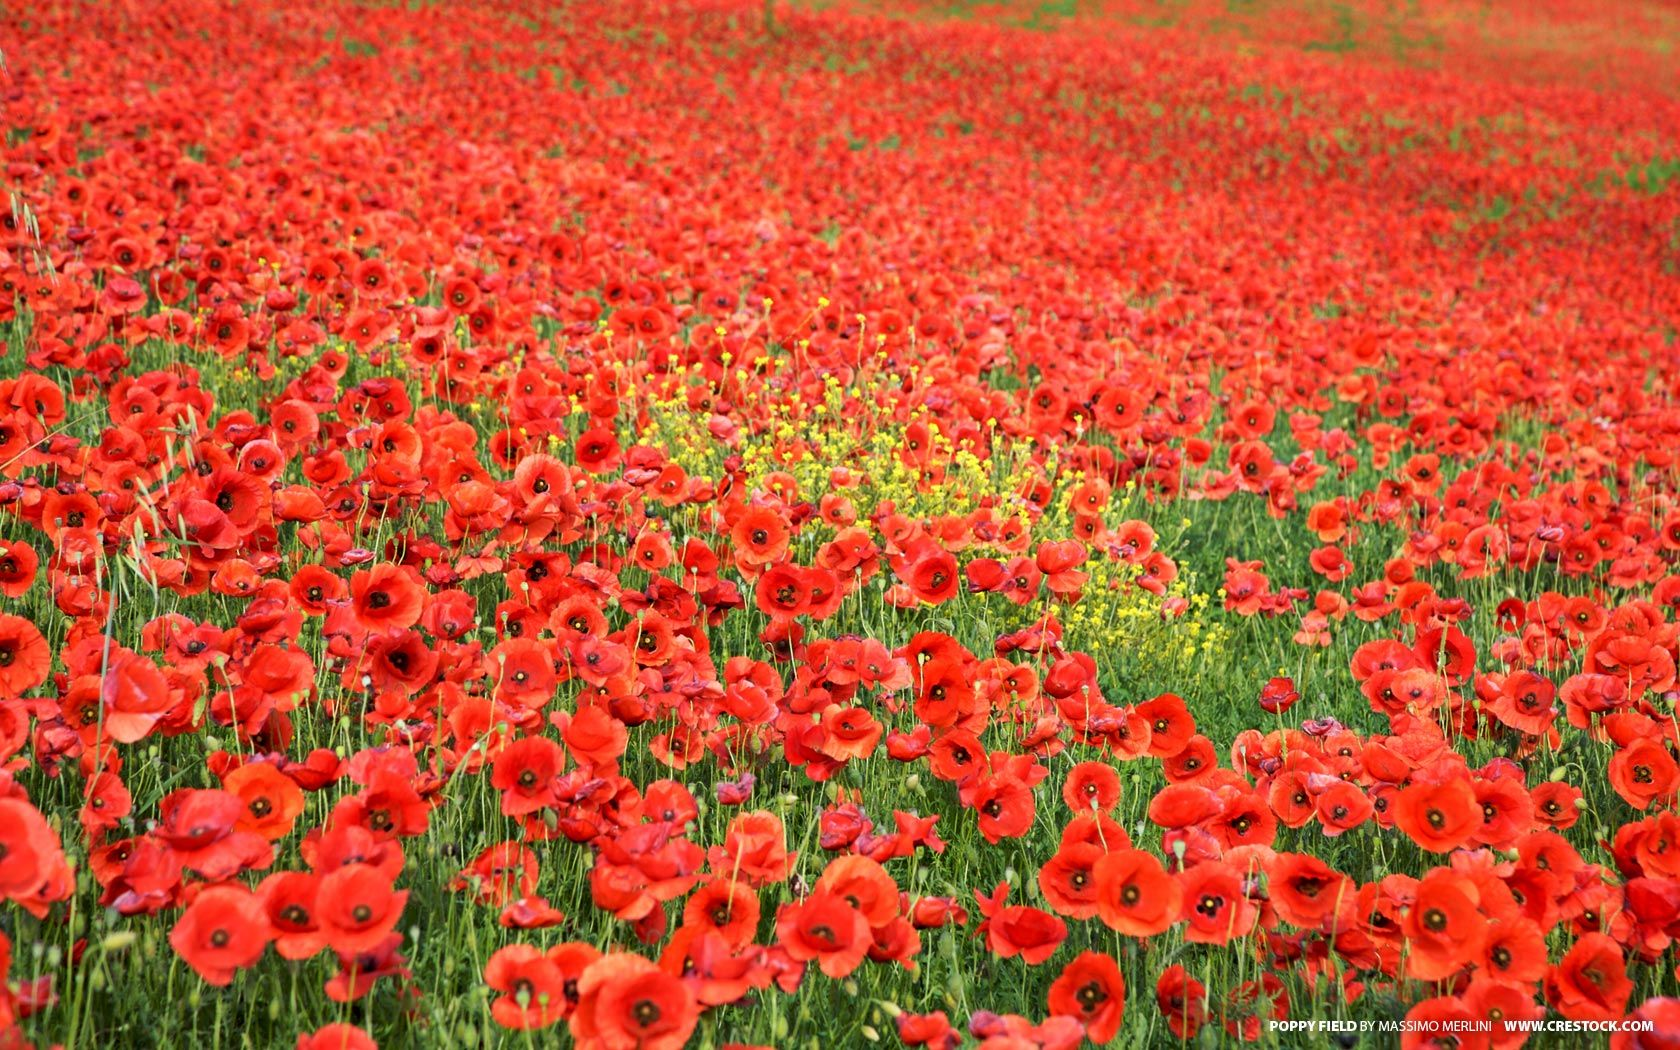 Poppy flower field at night royalty free stock photography image - Field Of Poppies Nature Wallpaper Image Featuring Flowers And Plants